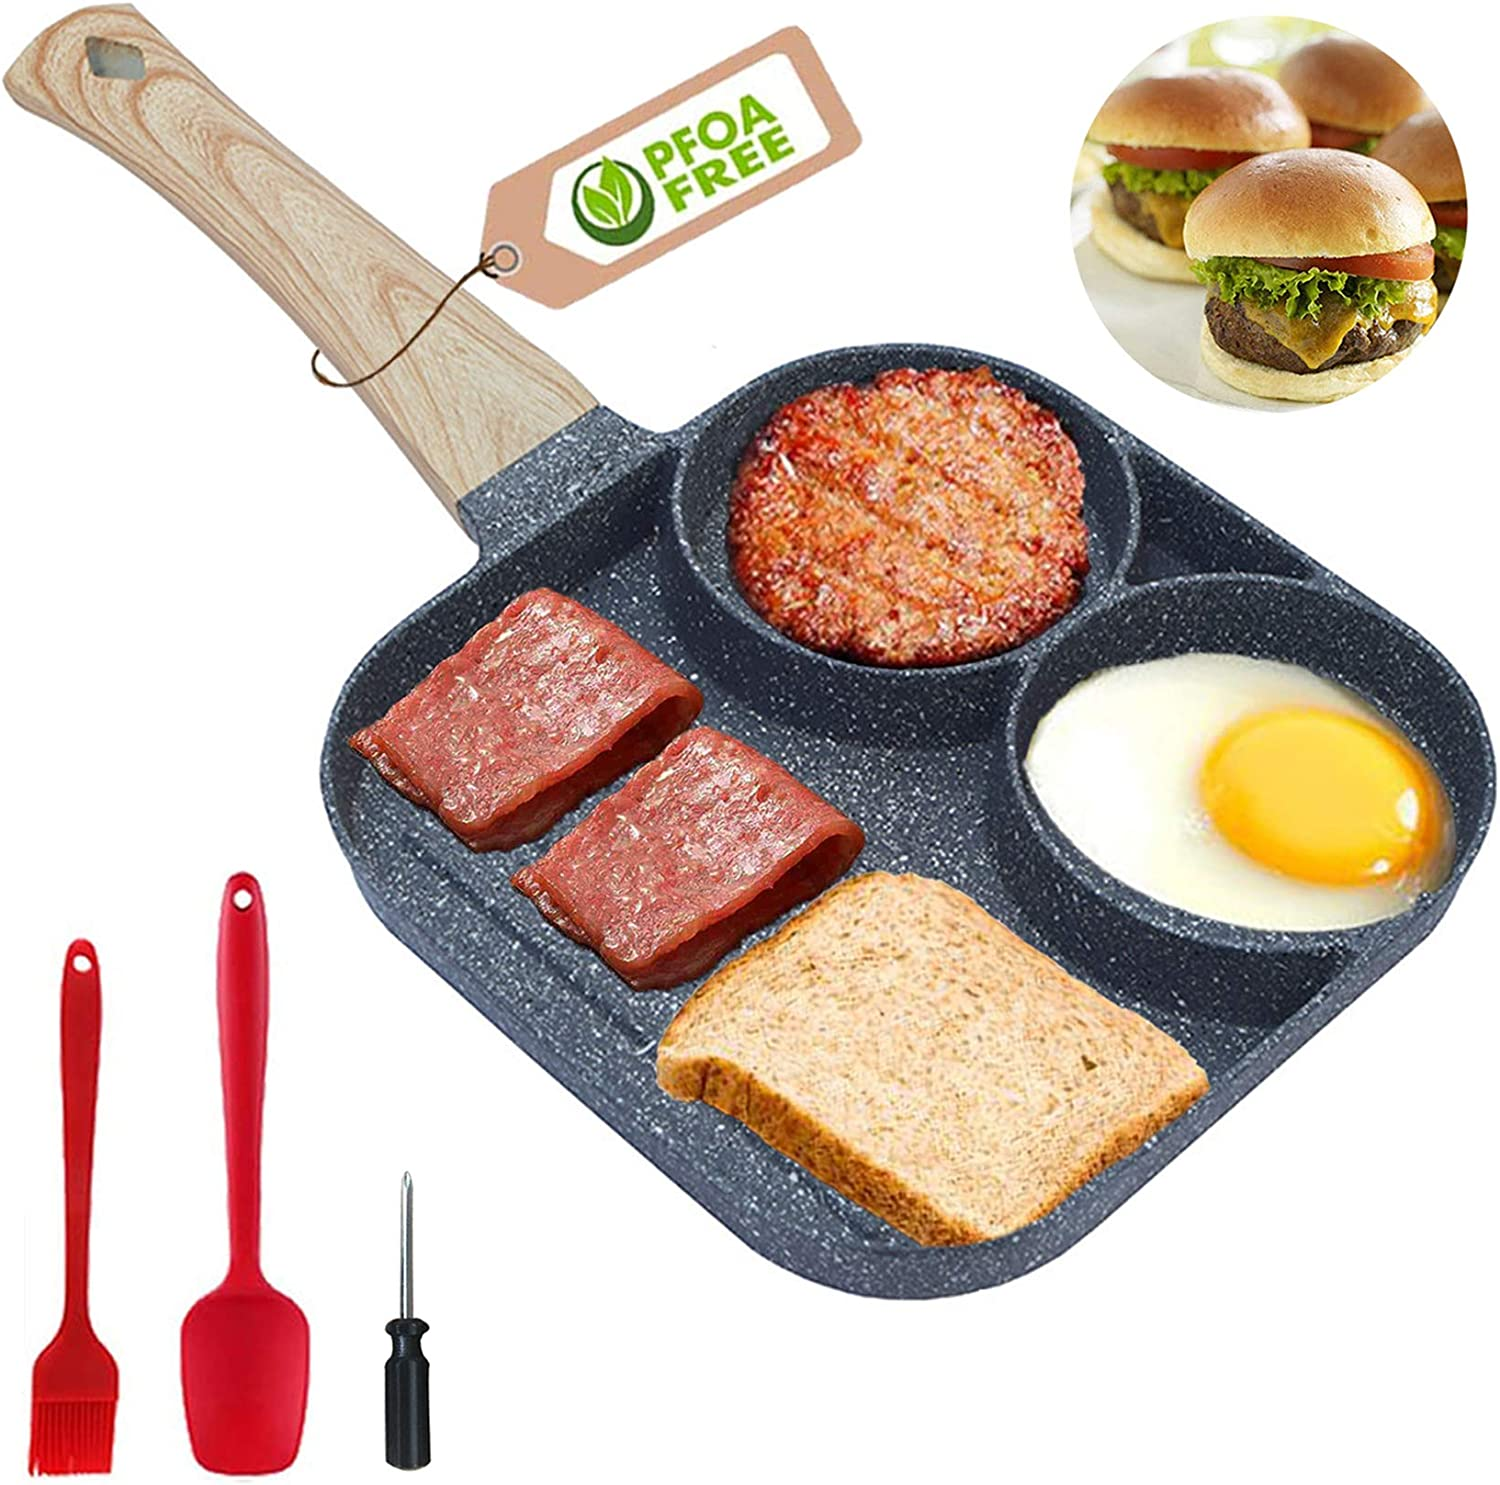 Nonstick Egg Breakfast Pan,3 Section Frying Pan,Aluminum Egg Cooker Pan for Breakfast,Burgers and Bacon, Suitable for Gas Stove & Induction Cooker